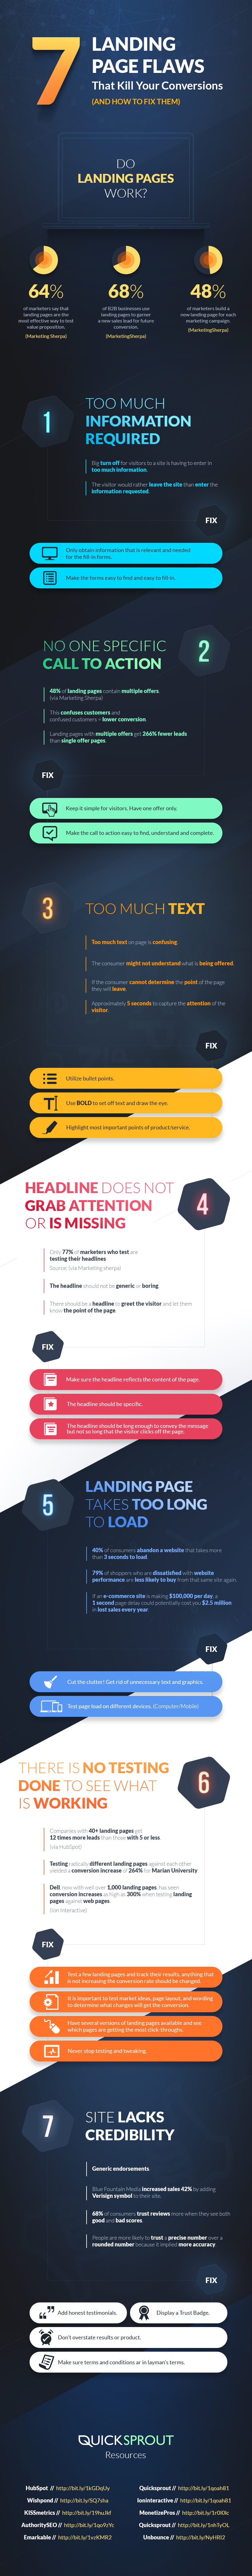 7 Landing Page Flaws That Kill Your Conversions (and How to Fix Them) [Infographic] | Social Media Today